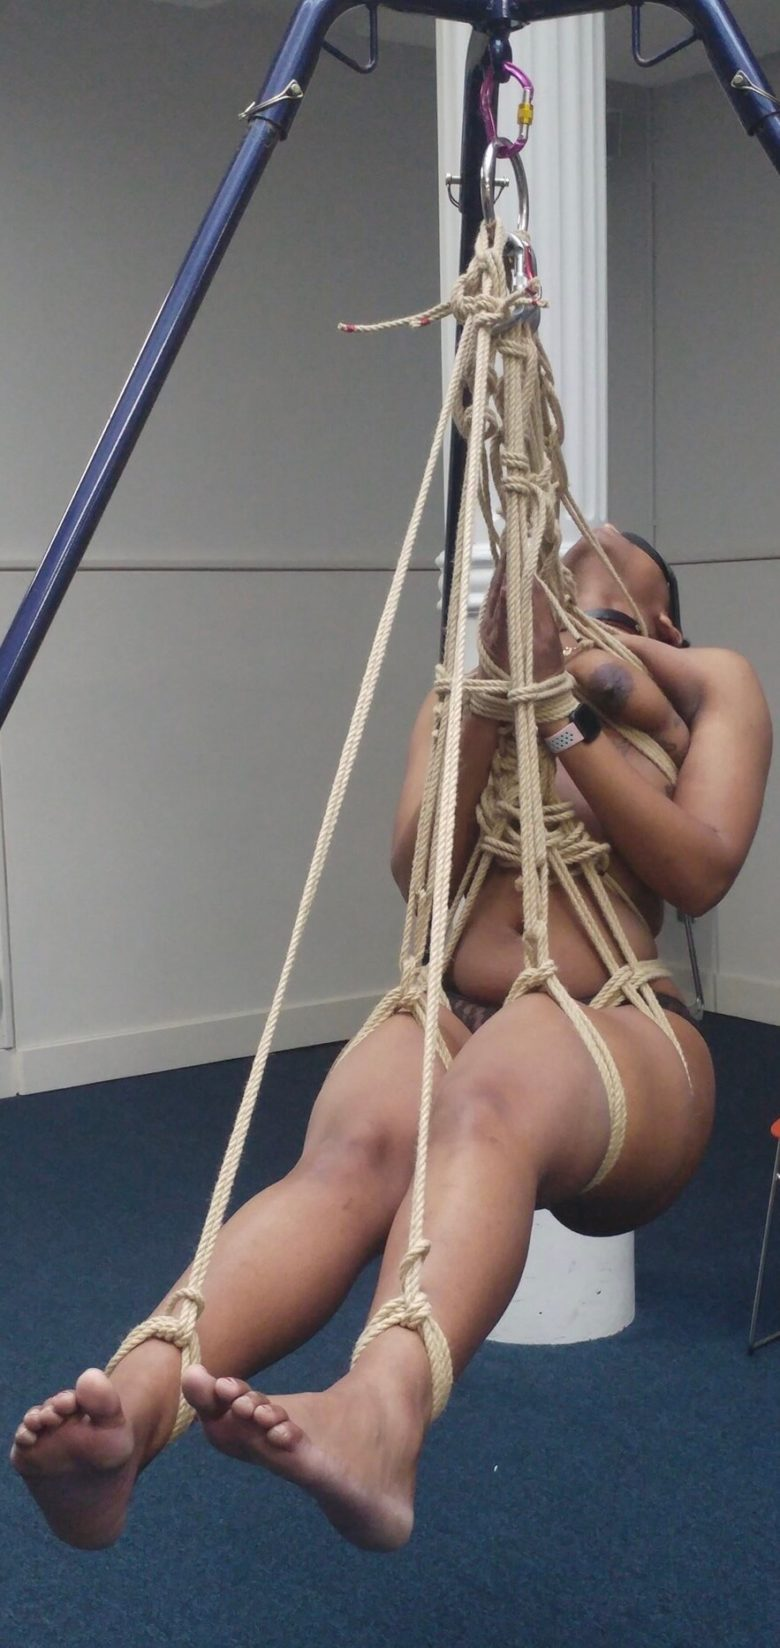 Cara bound and suspended with rope from a suspension frame